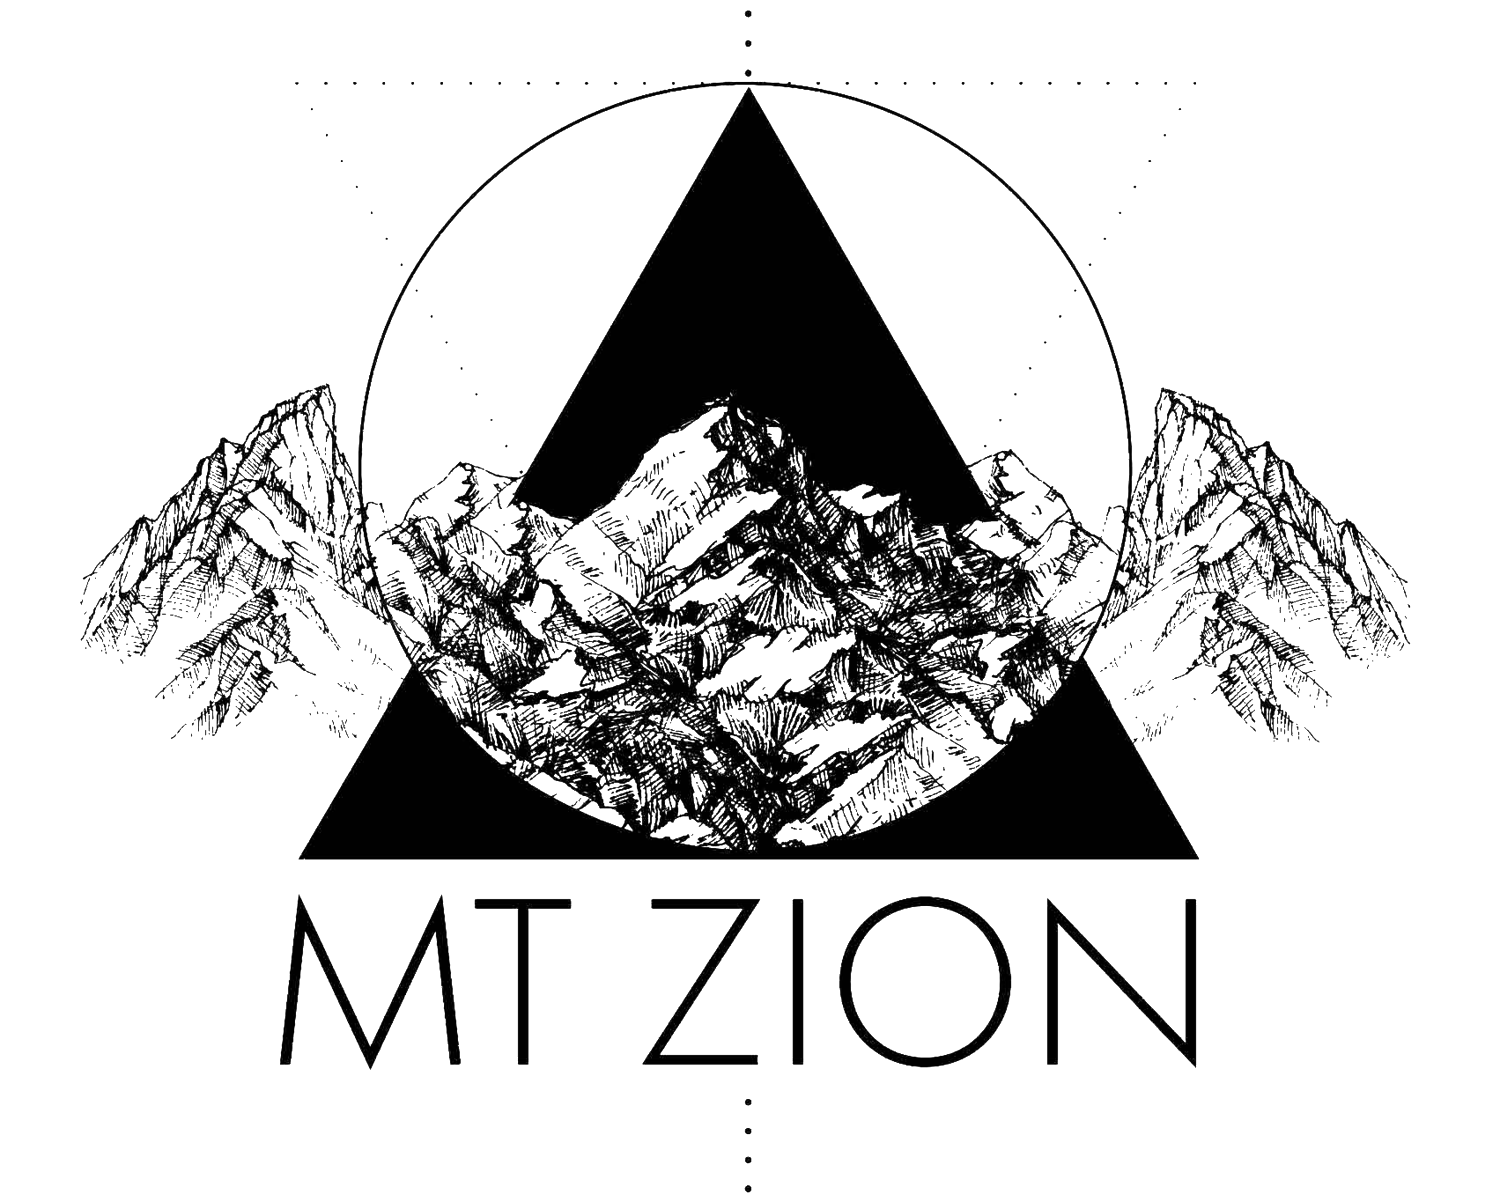 Mt Zion - Woodworking and Illustration for Home + Spirit